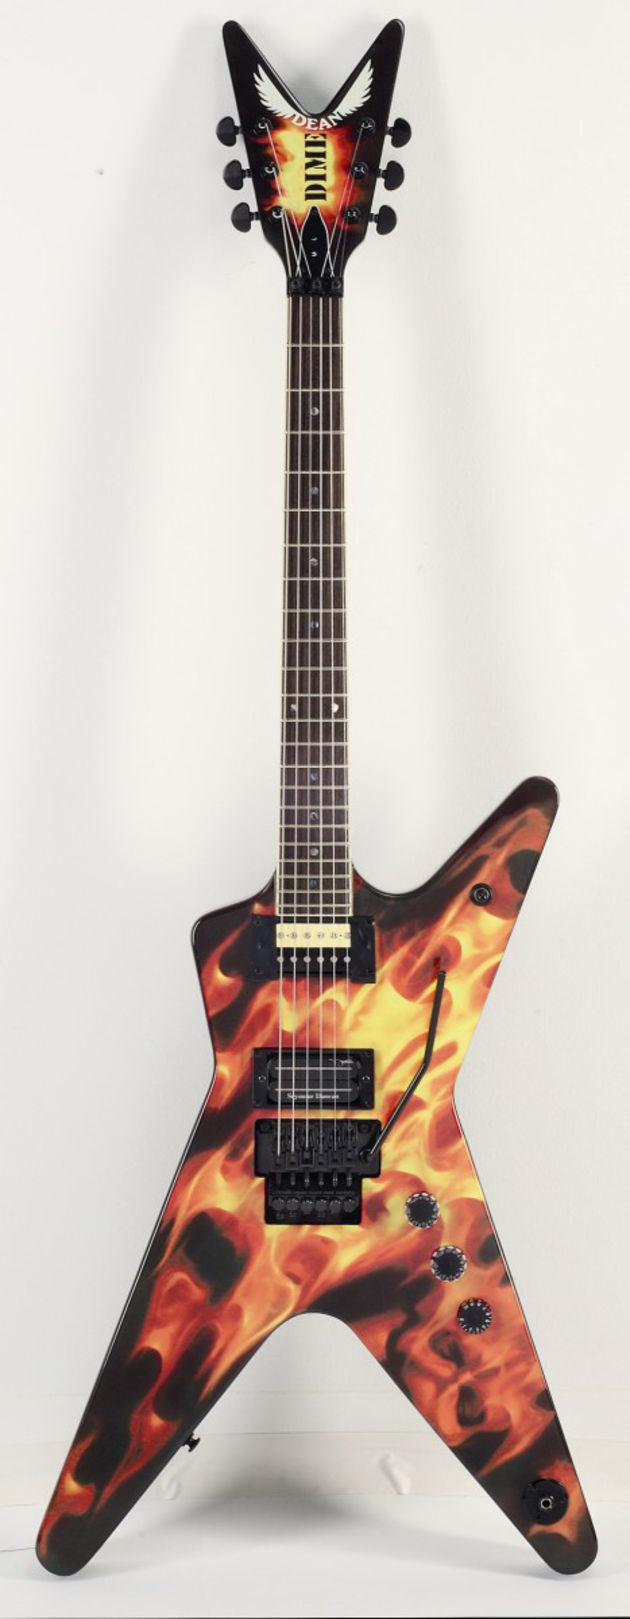 The Dime-O-Flame offers a solid mahogany body and set mahogany neck